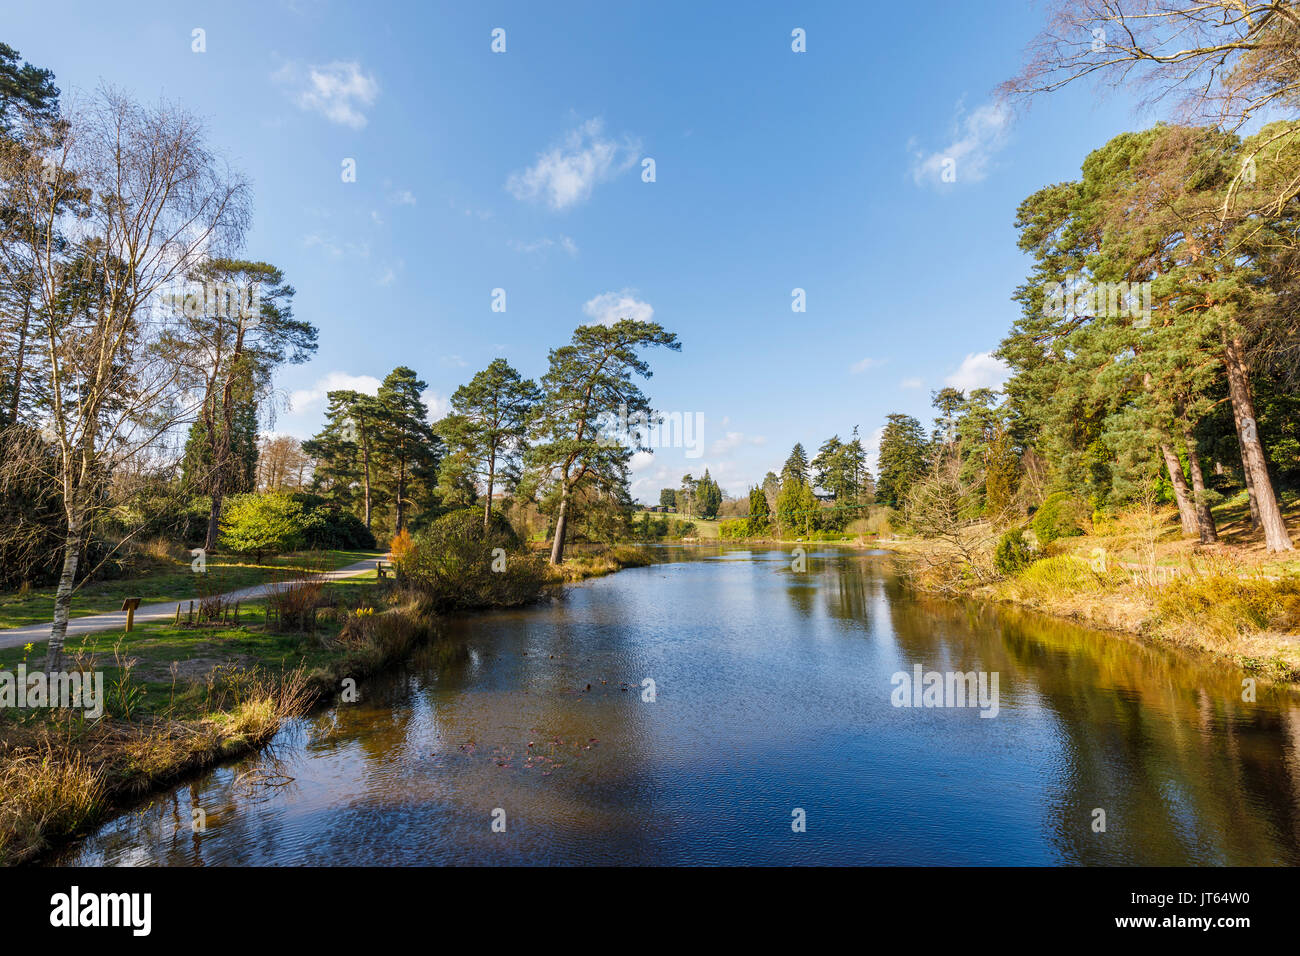 Pines and evergreen trees beside Marshall's Lake at Bedgebury National Pinetum, Bedgebury, Kent south-east England on a sunny spring day with blue sky - Stock Image